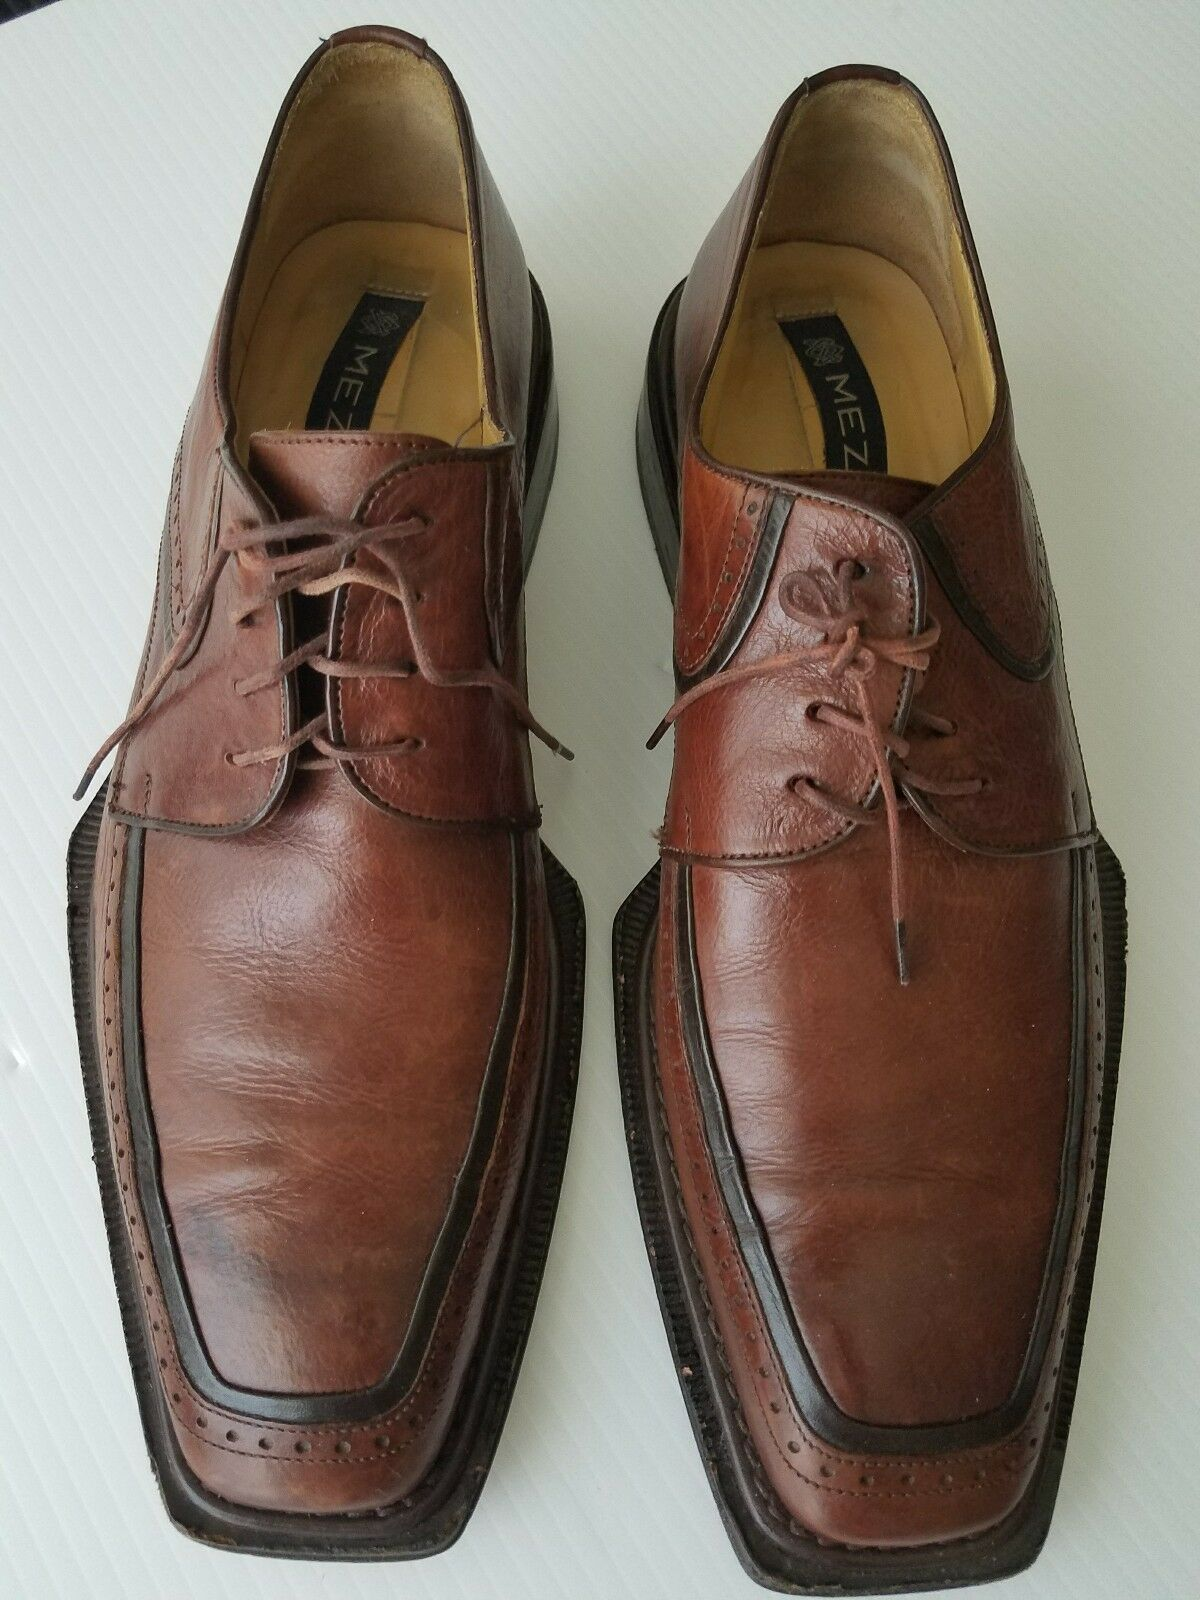 Mezlan. Stratus Brown Leather Shoes - Size: 10.5 M. Made in Spain.